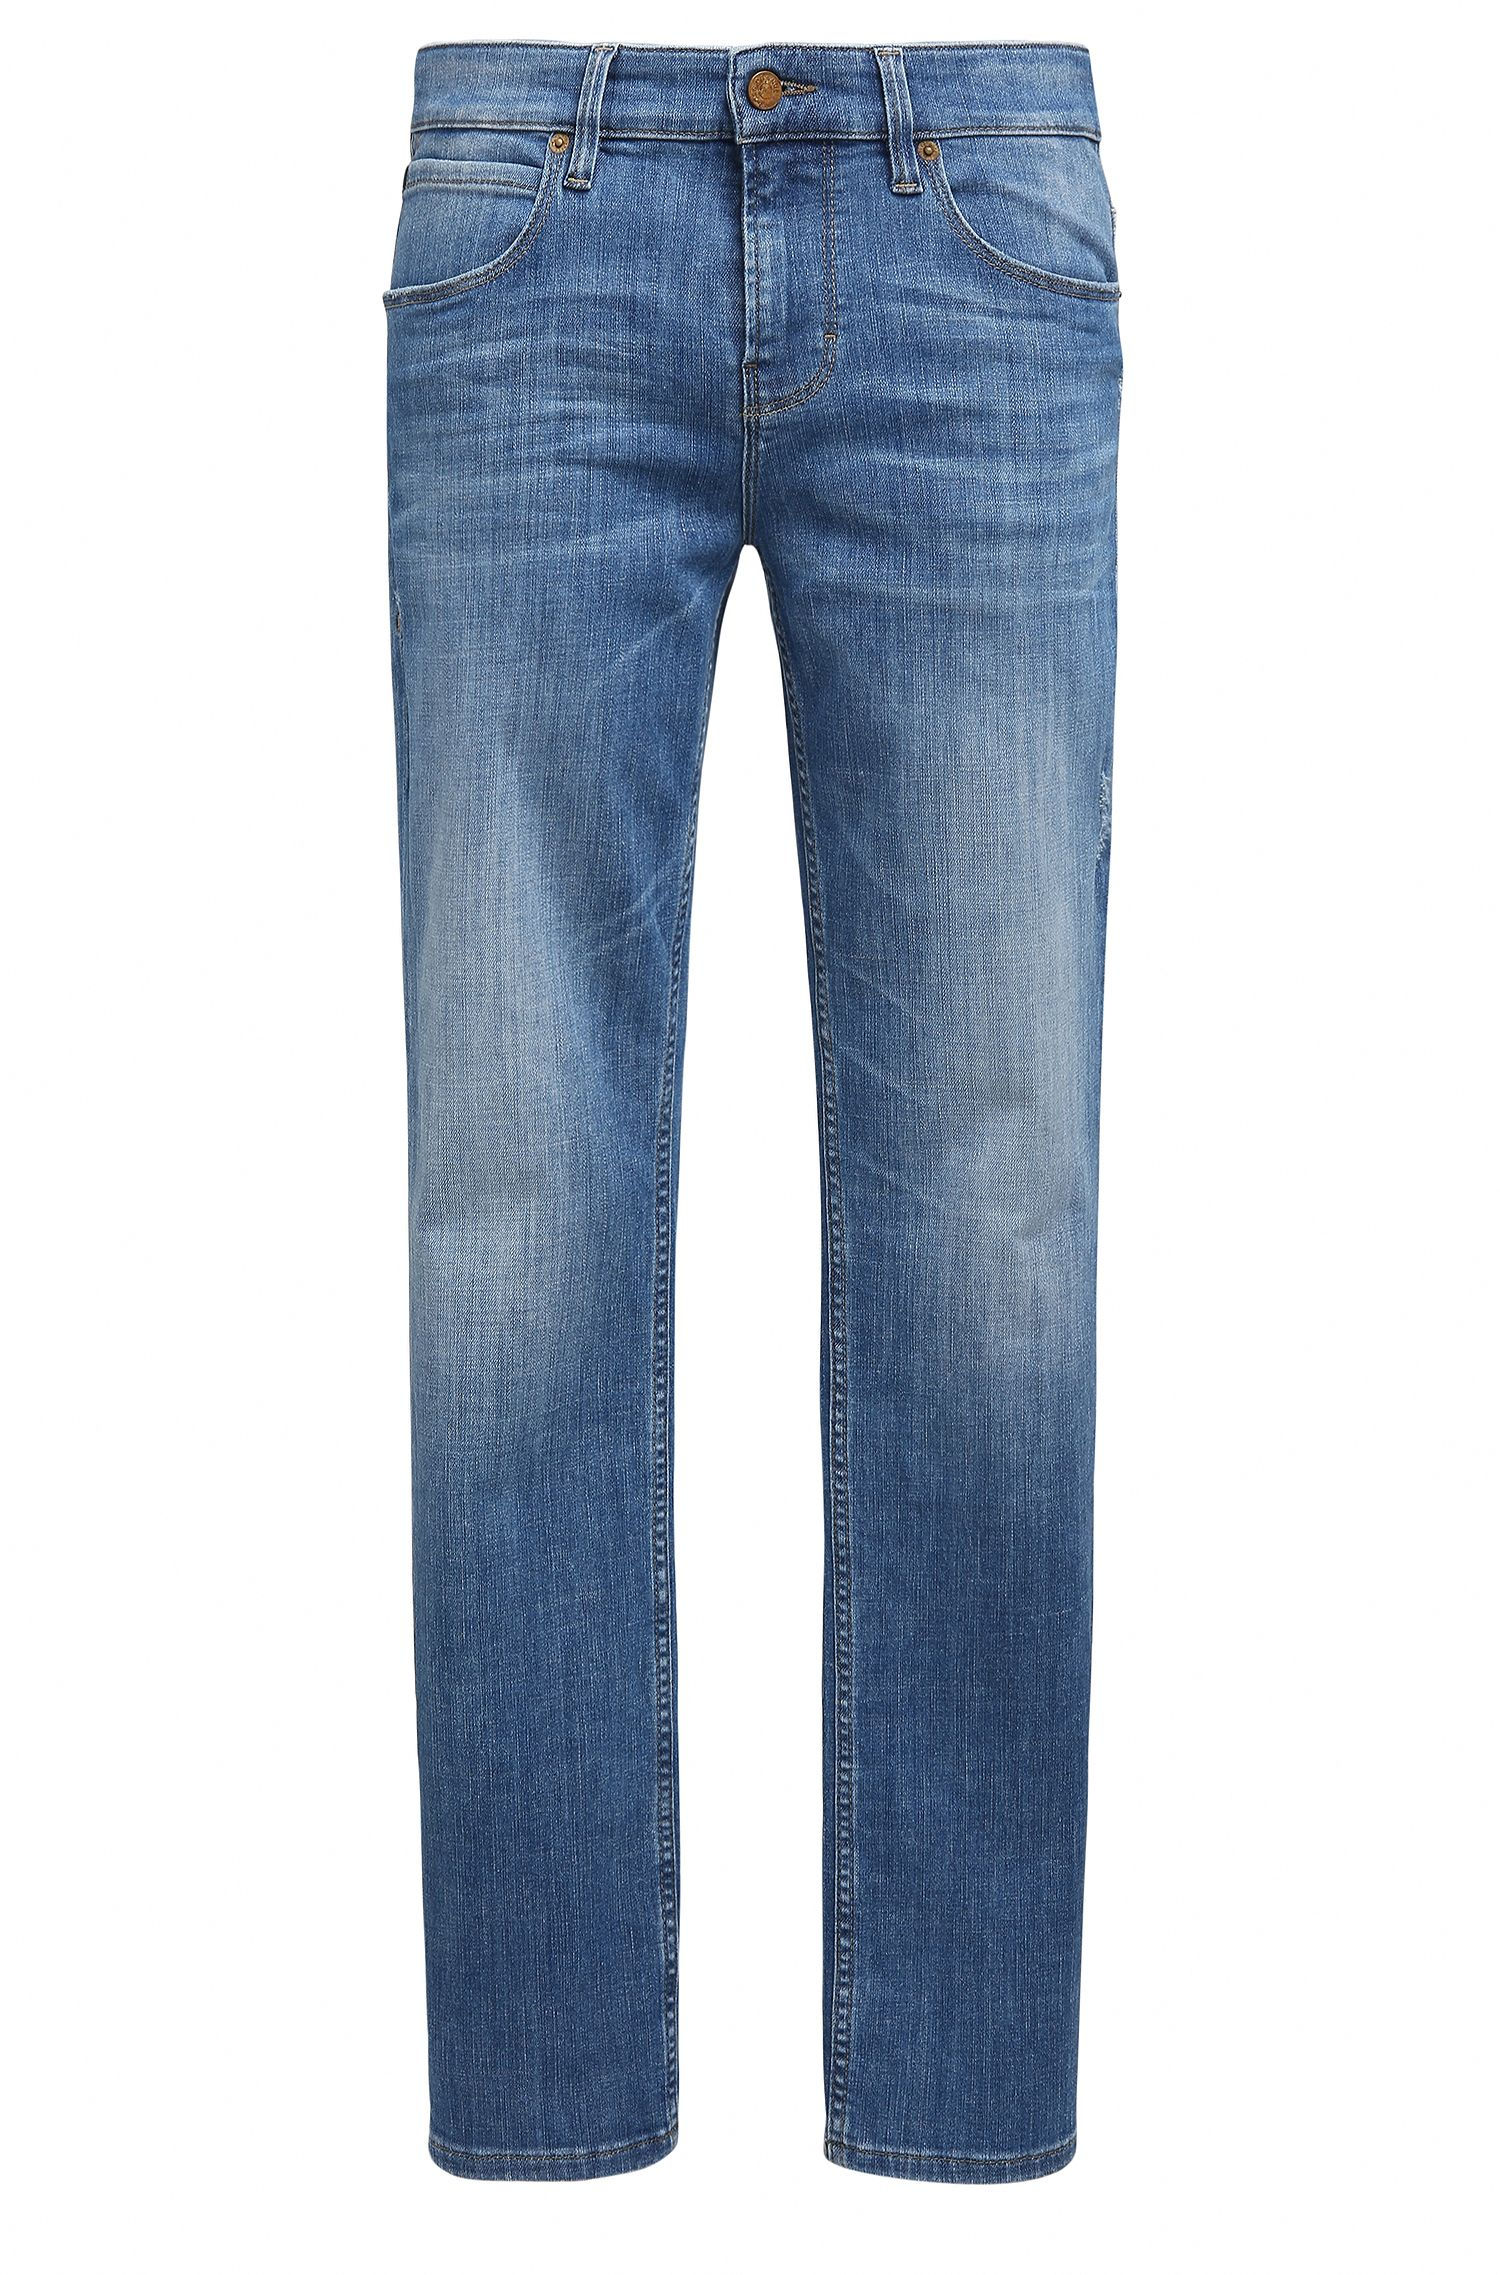 Jeans Slim Fit en sergé de denim hachuré